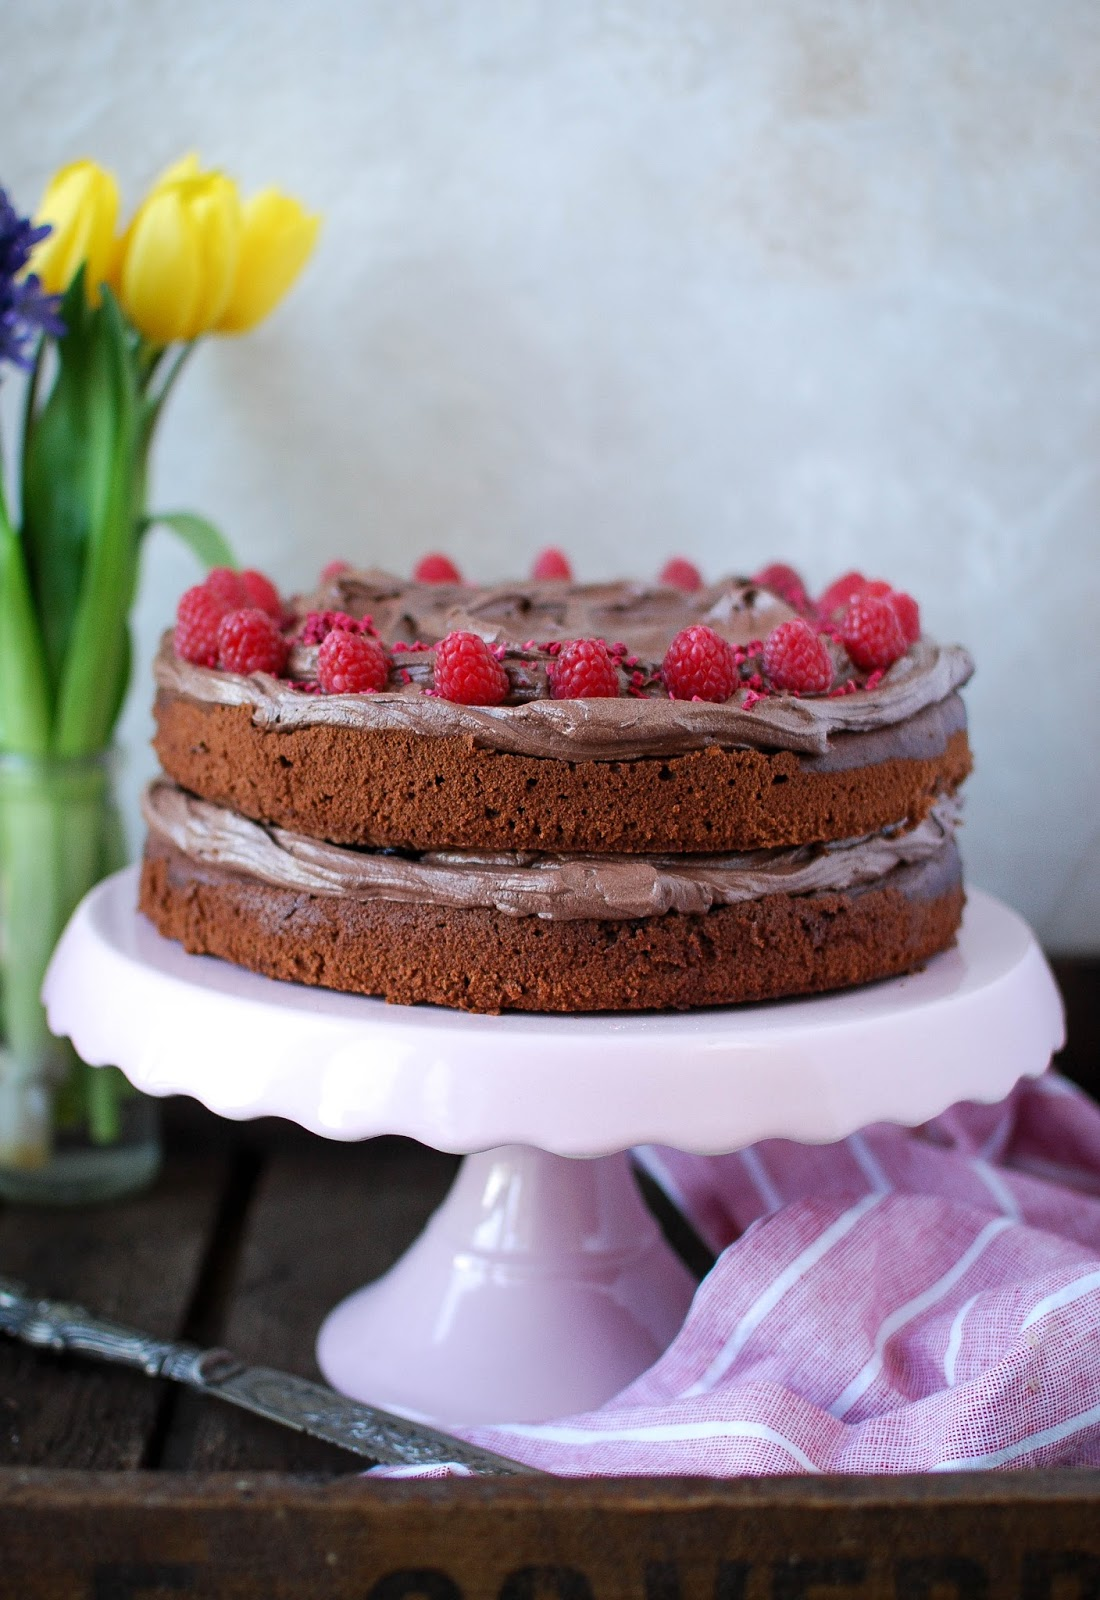 The best vegan chocolate cake recipe ever, give it a try and see for yourself.